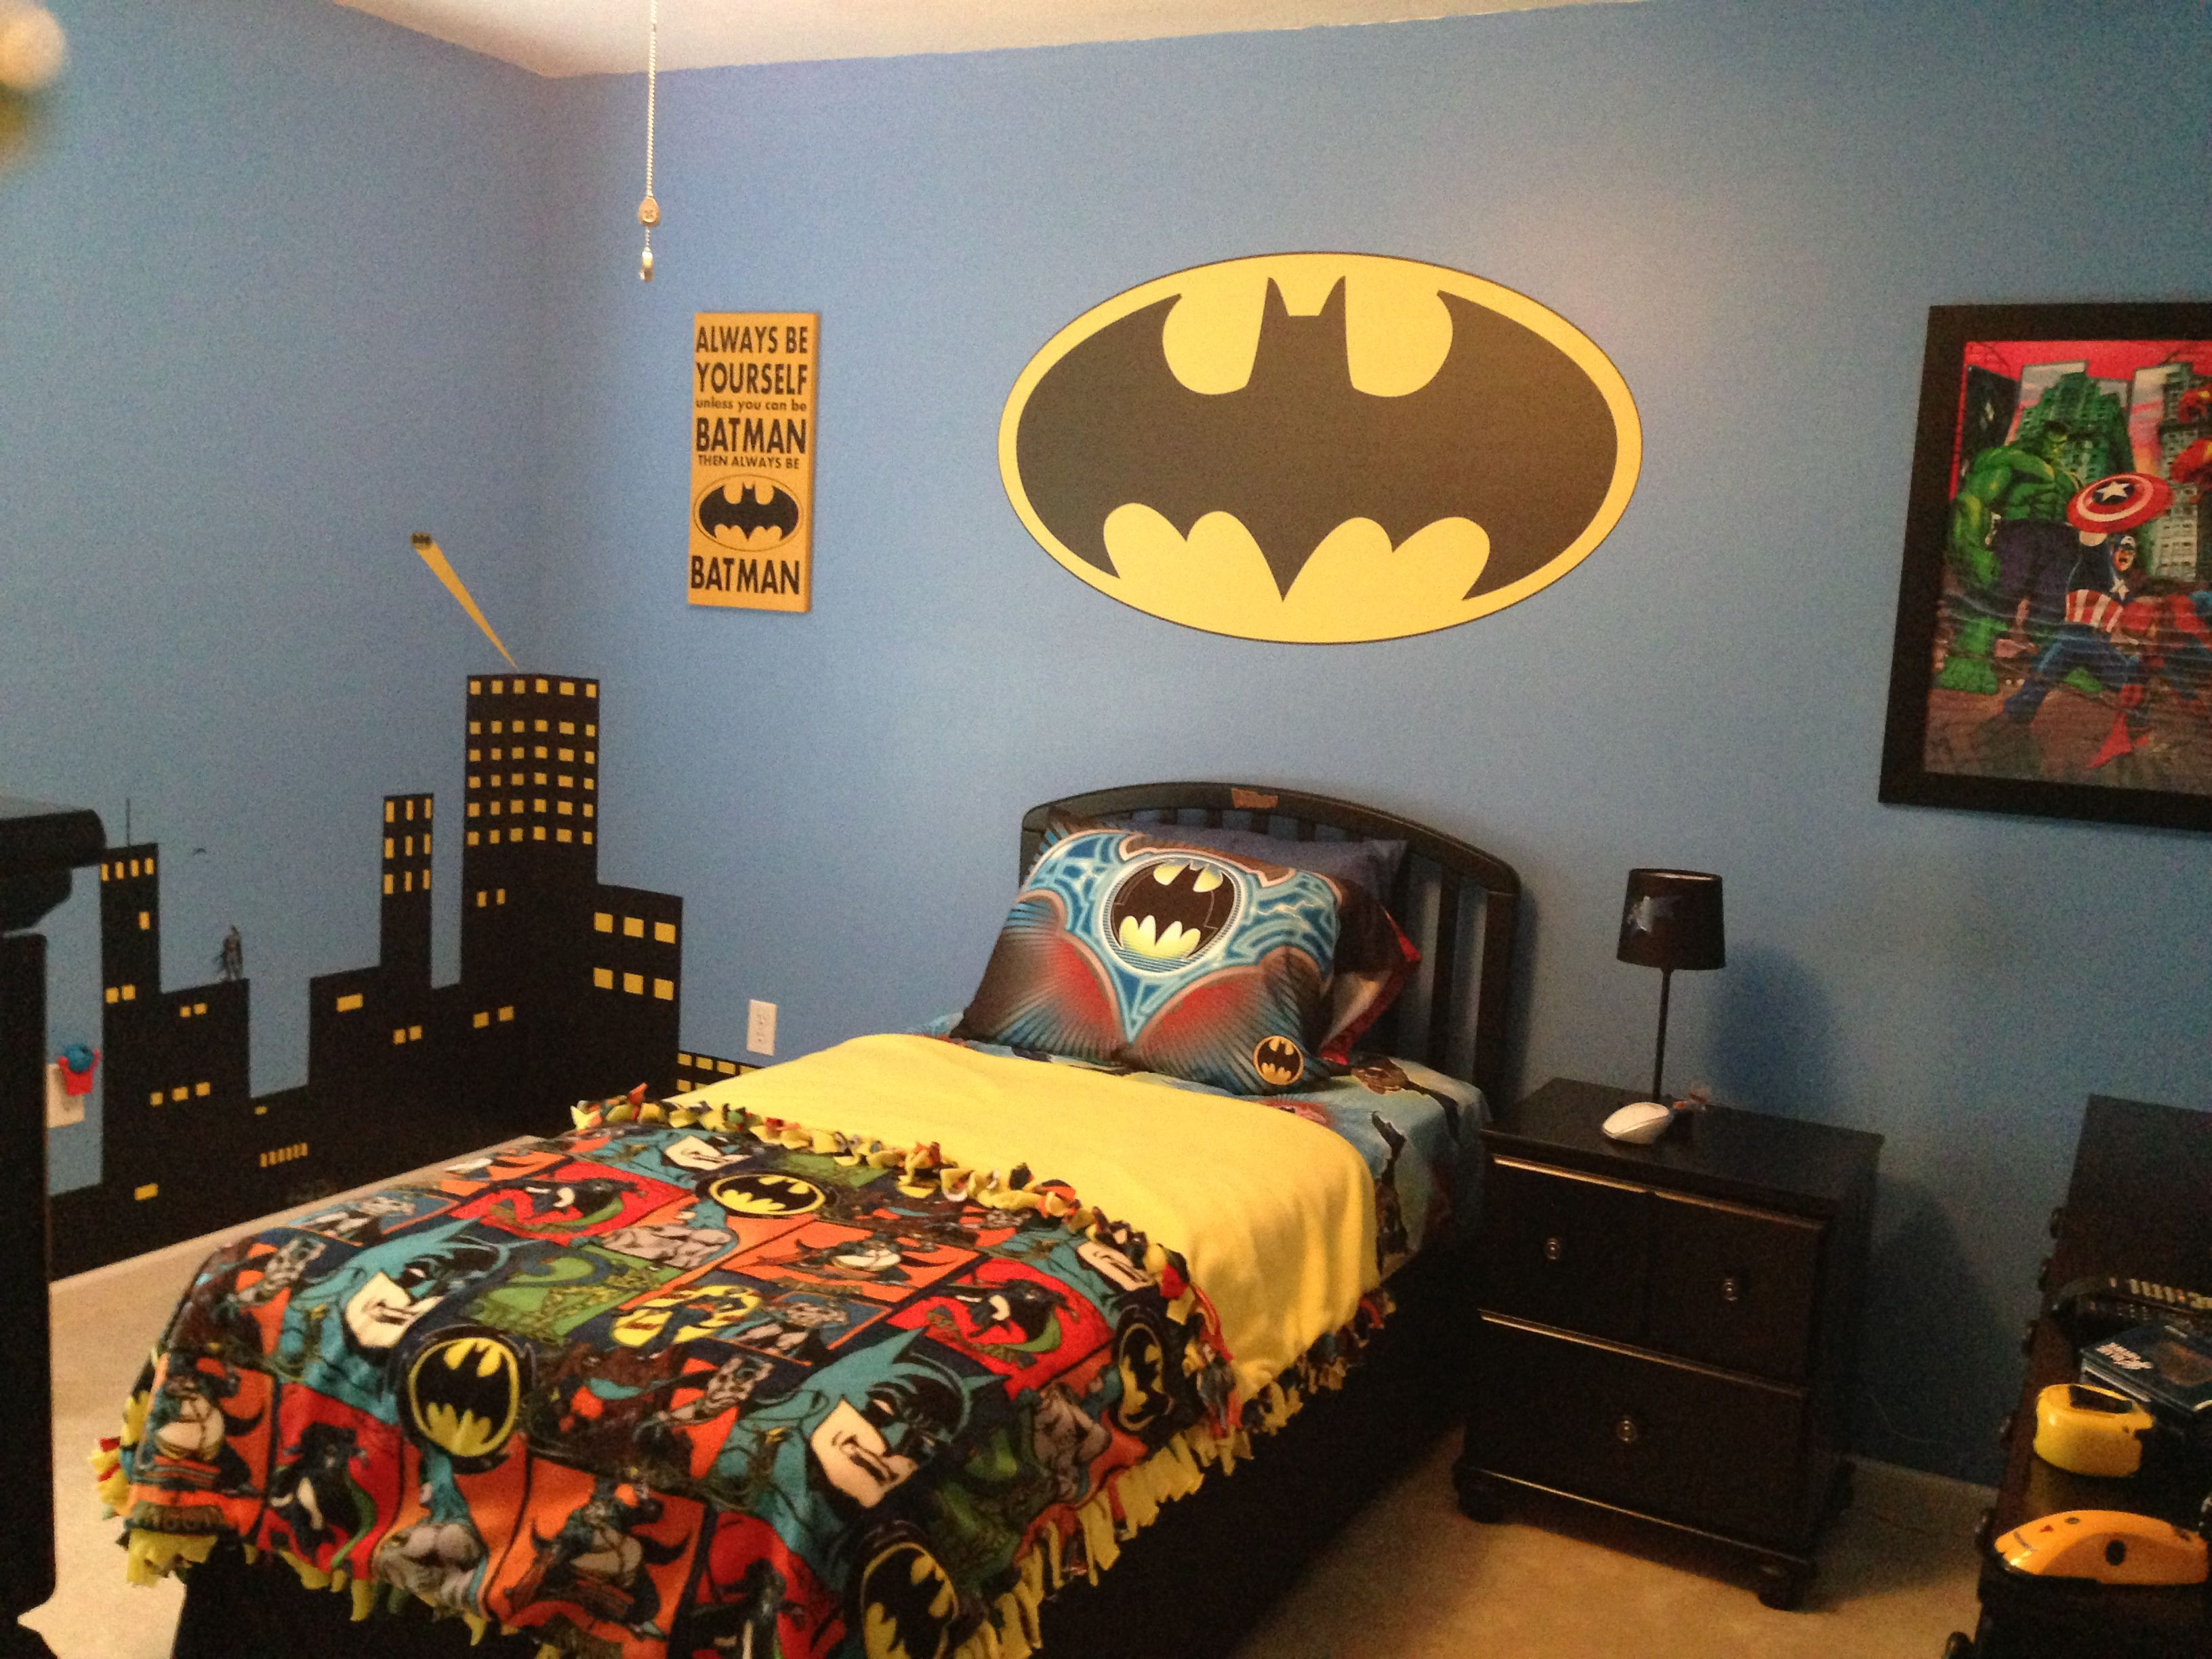 Superman Themed Bedroom My Son's Batman Bedroom  Diy  Pinterest  Batman Bedroom